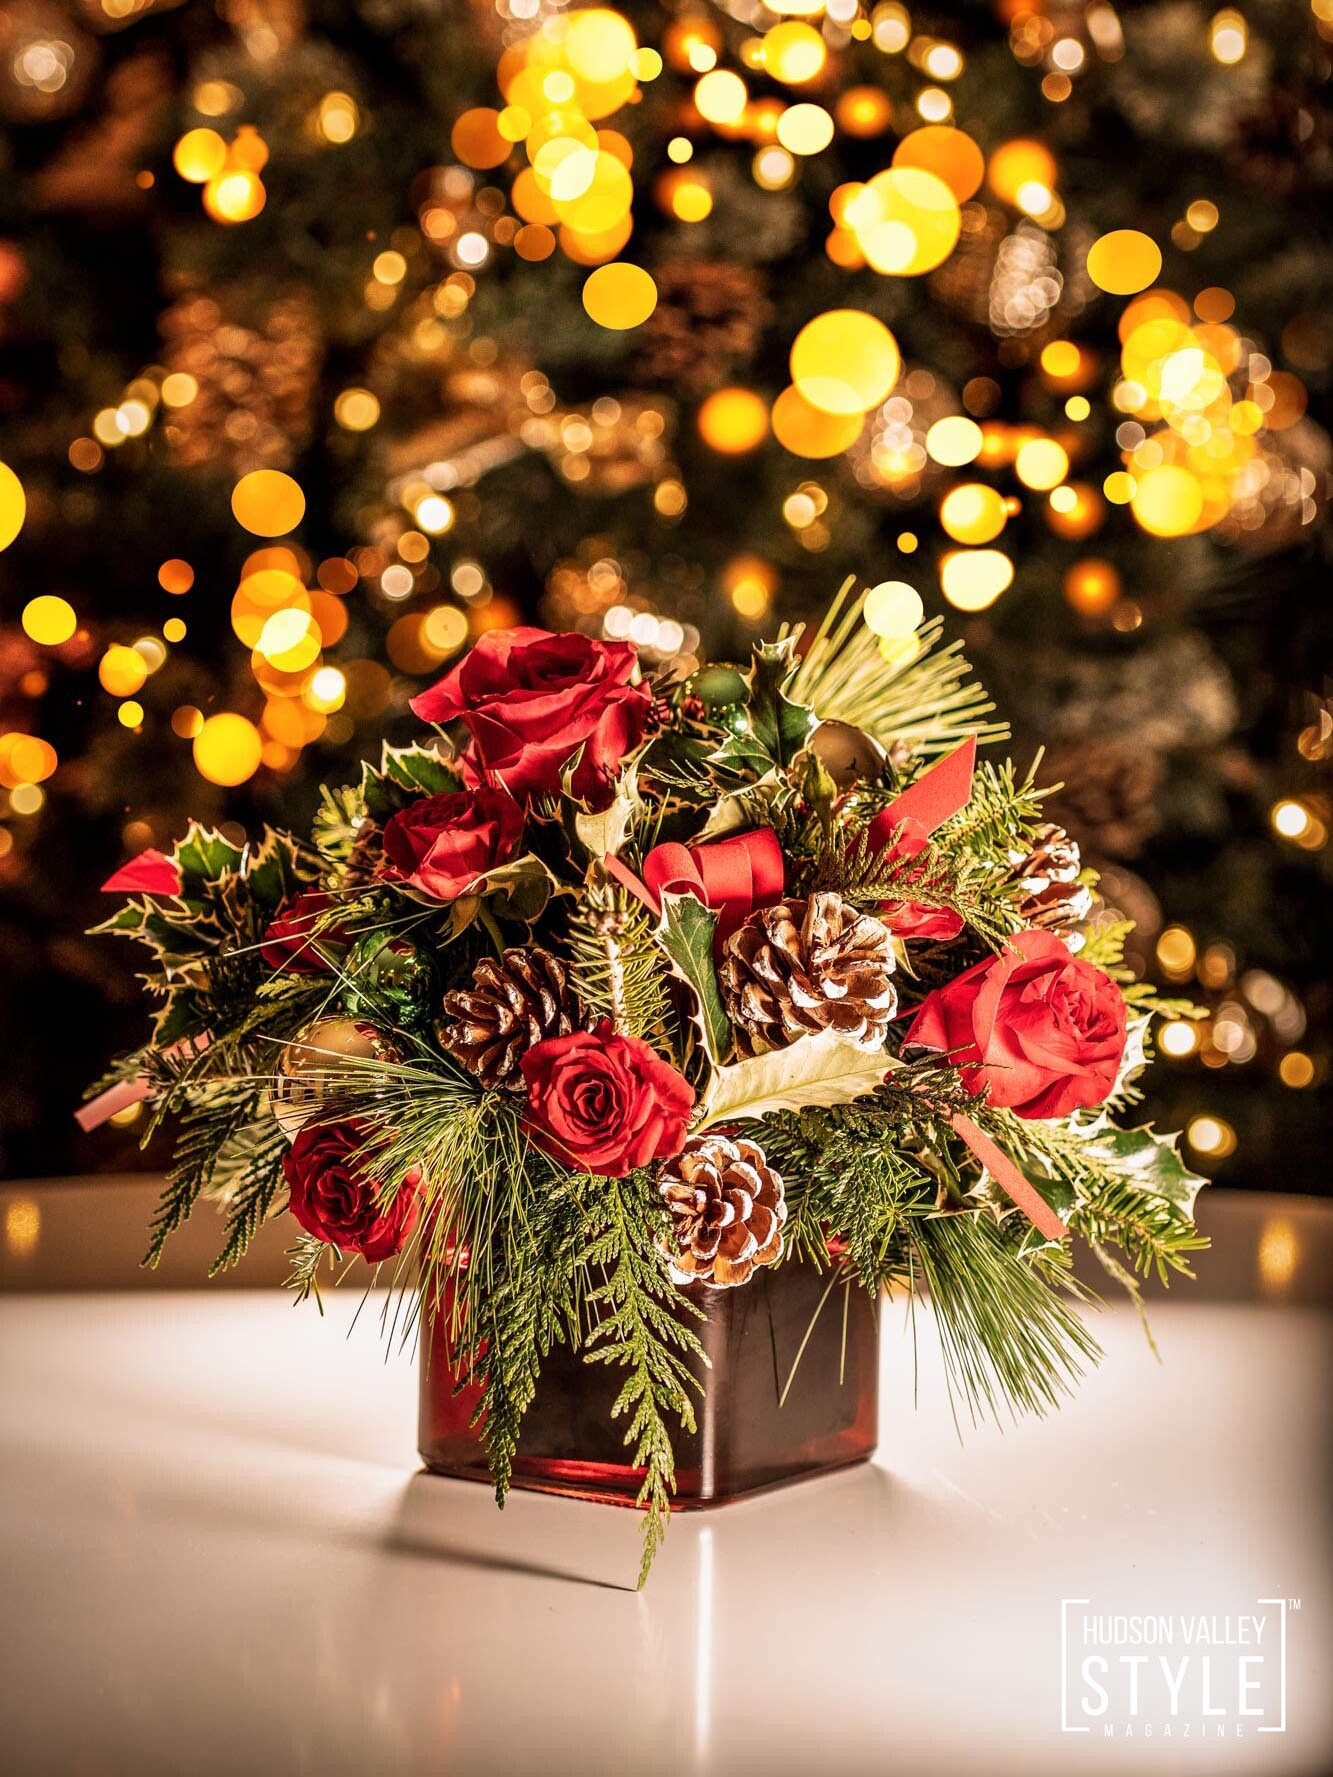 Mystic Rose Florist in Montgomery, NY - Hudson Valley Style Holiday Gift Guide